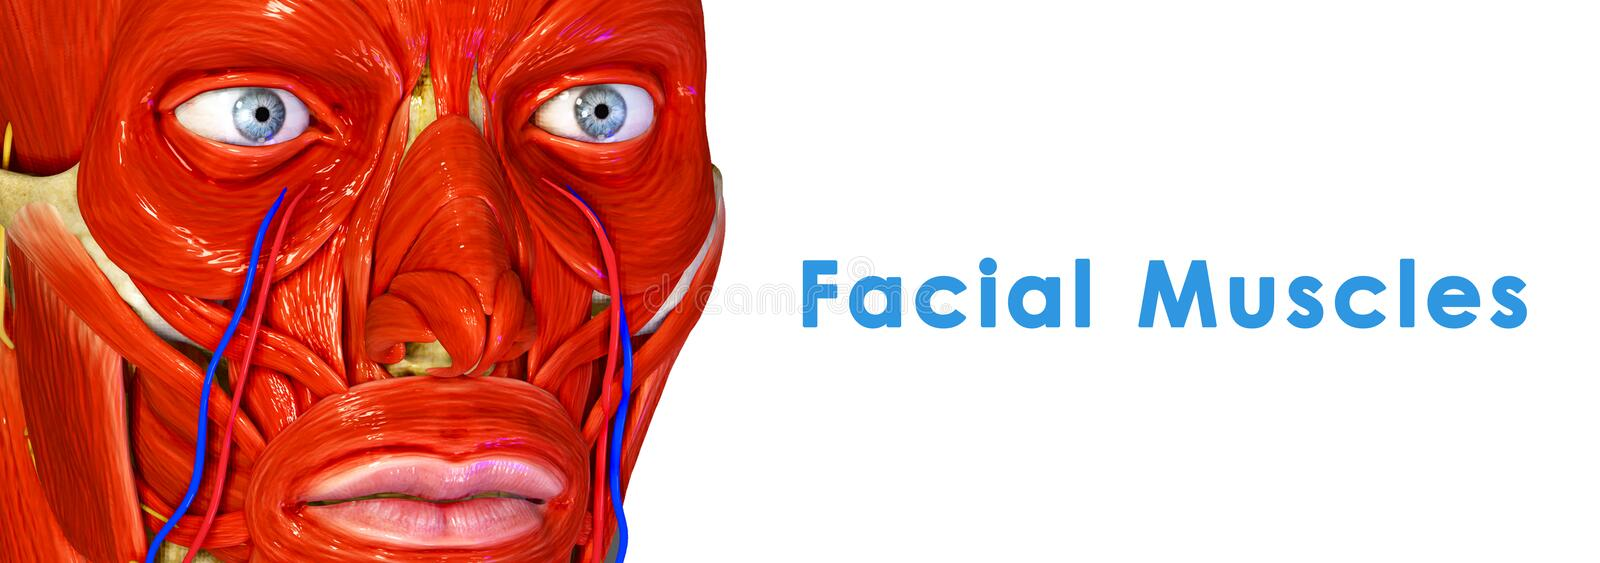 Facial Muscles stock illustration